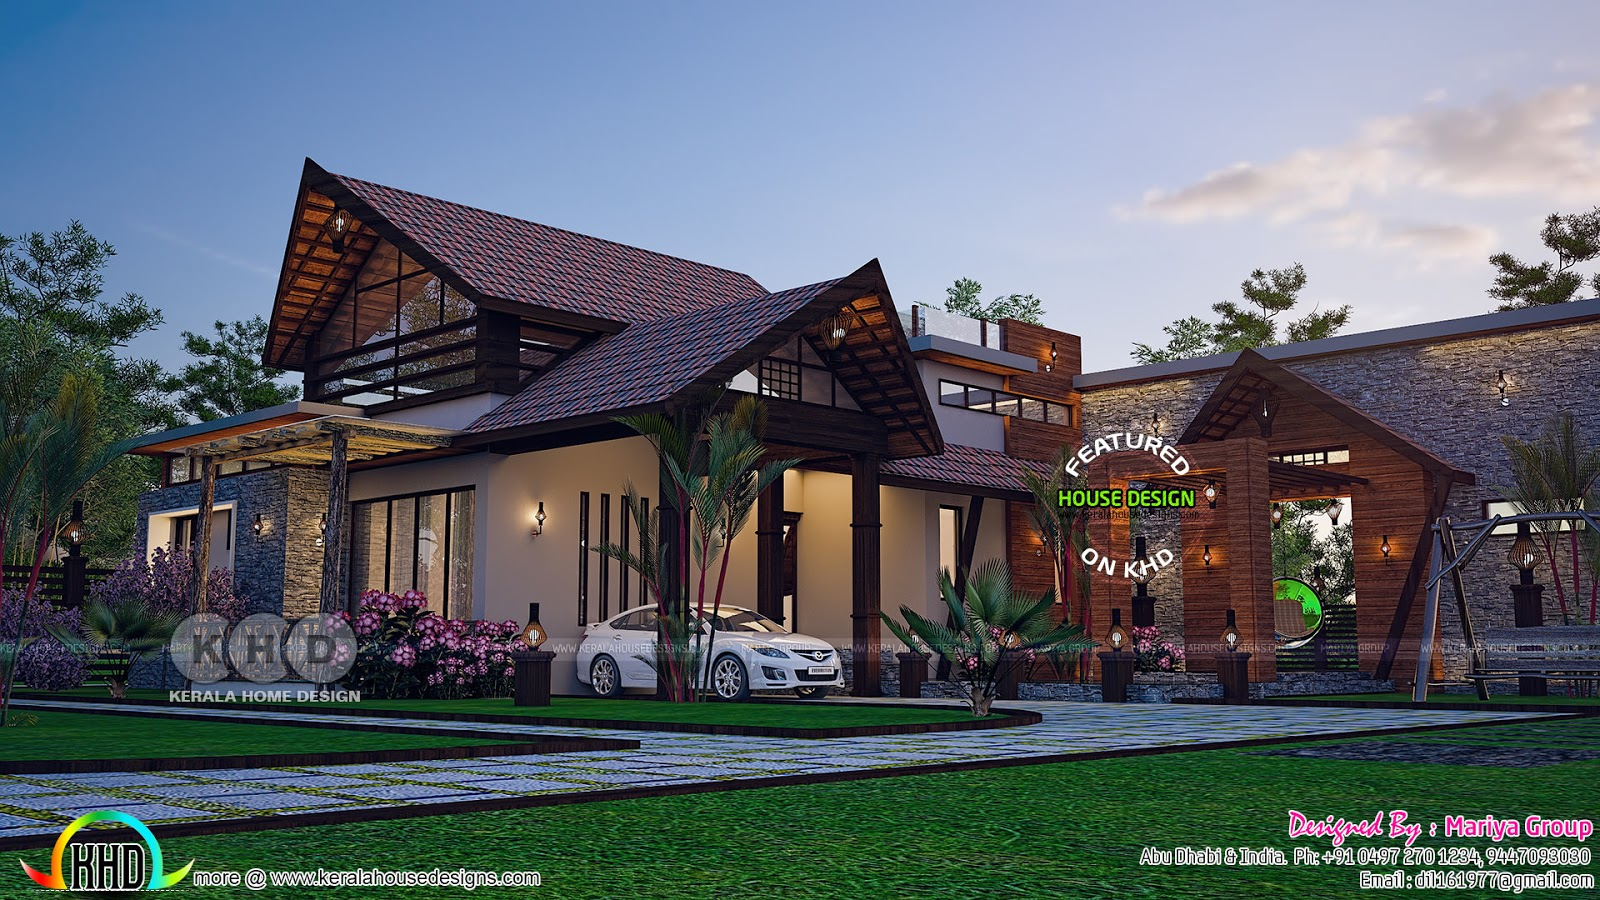 1342 sq-ft house built in a traditional way | Kerala home